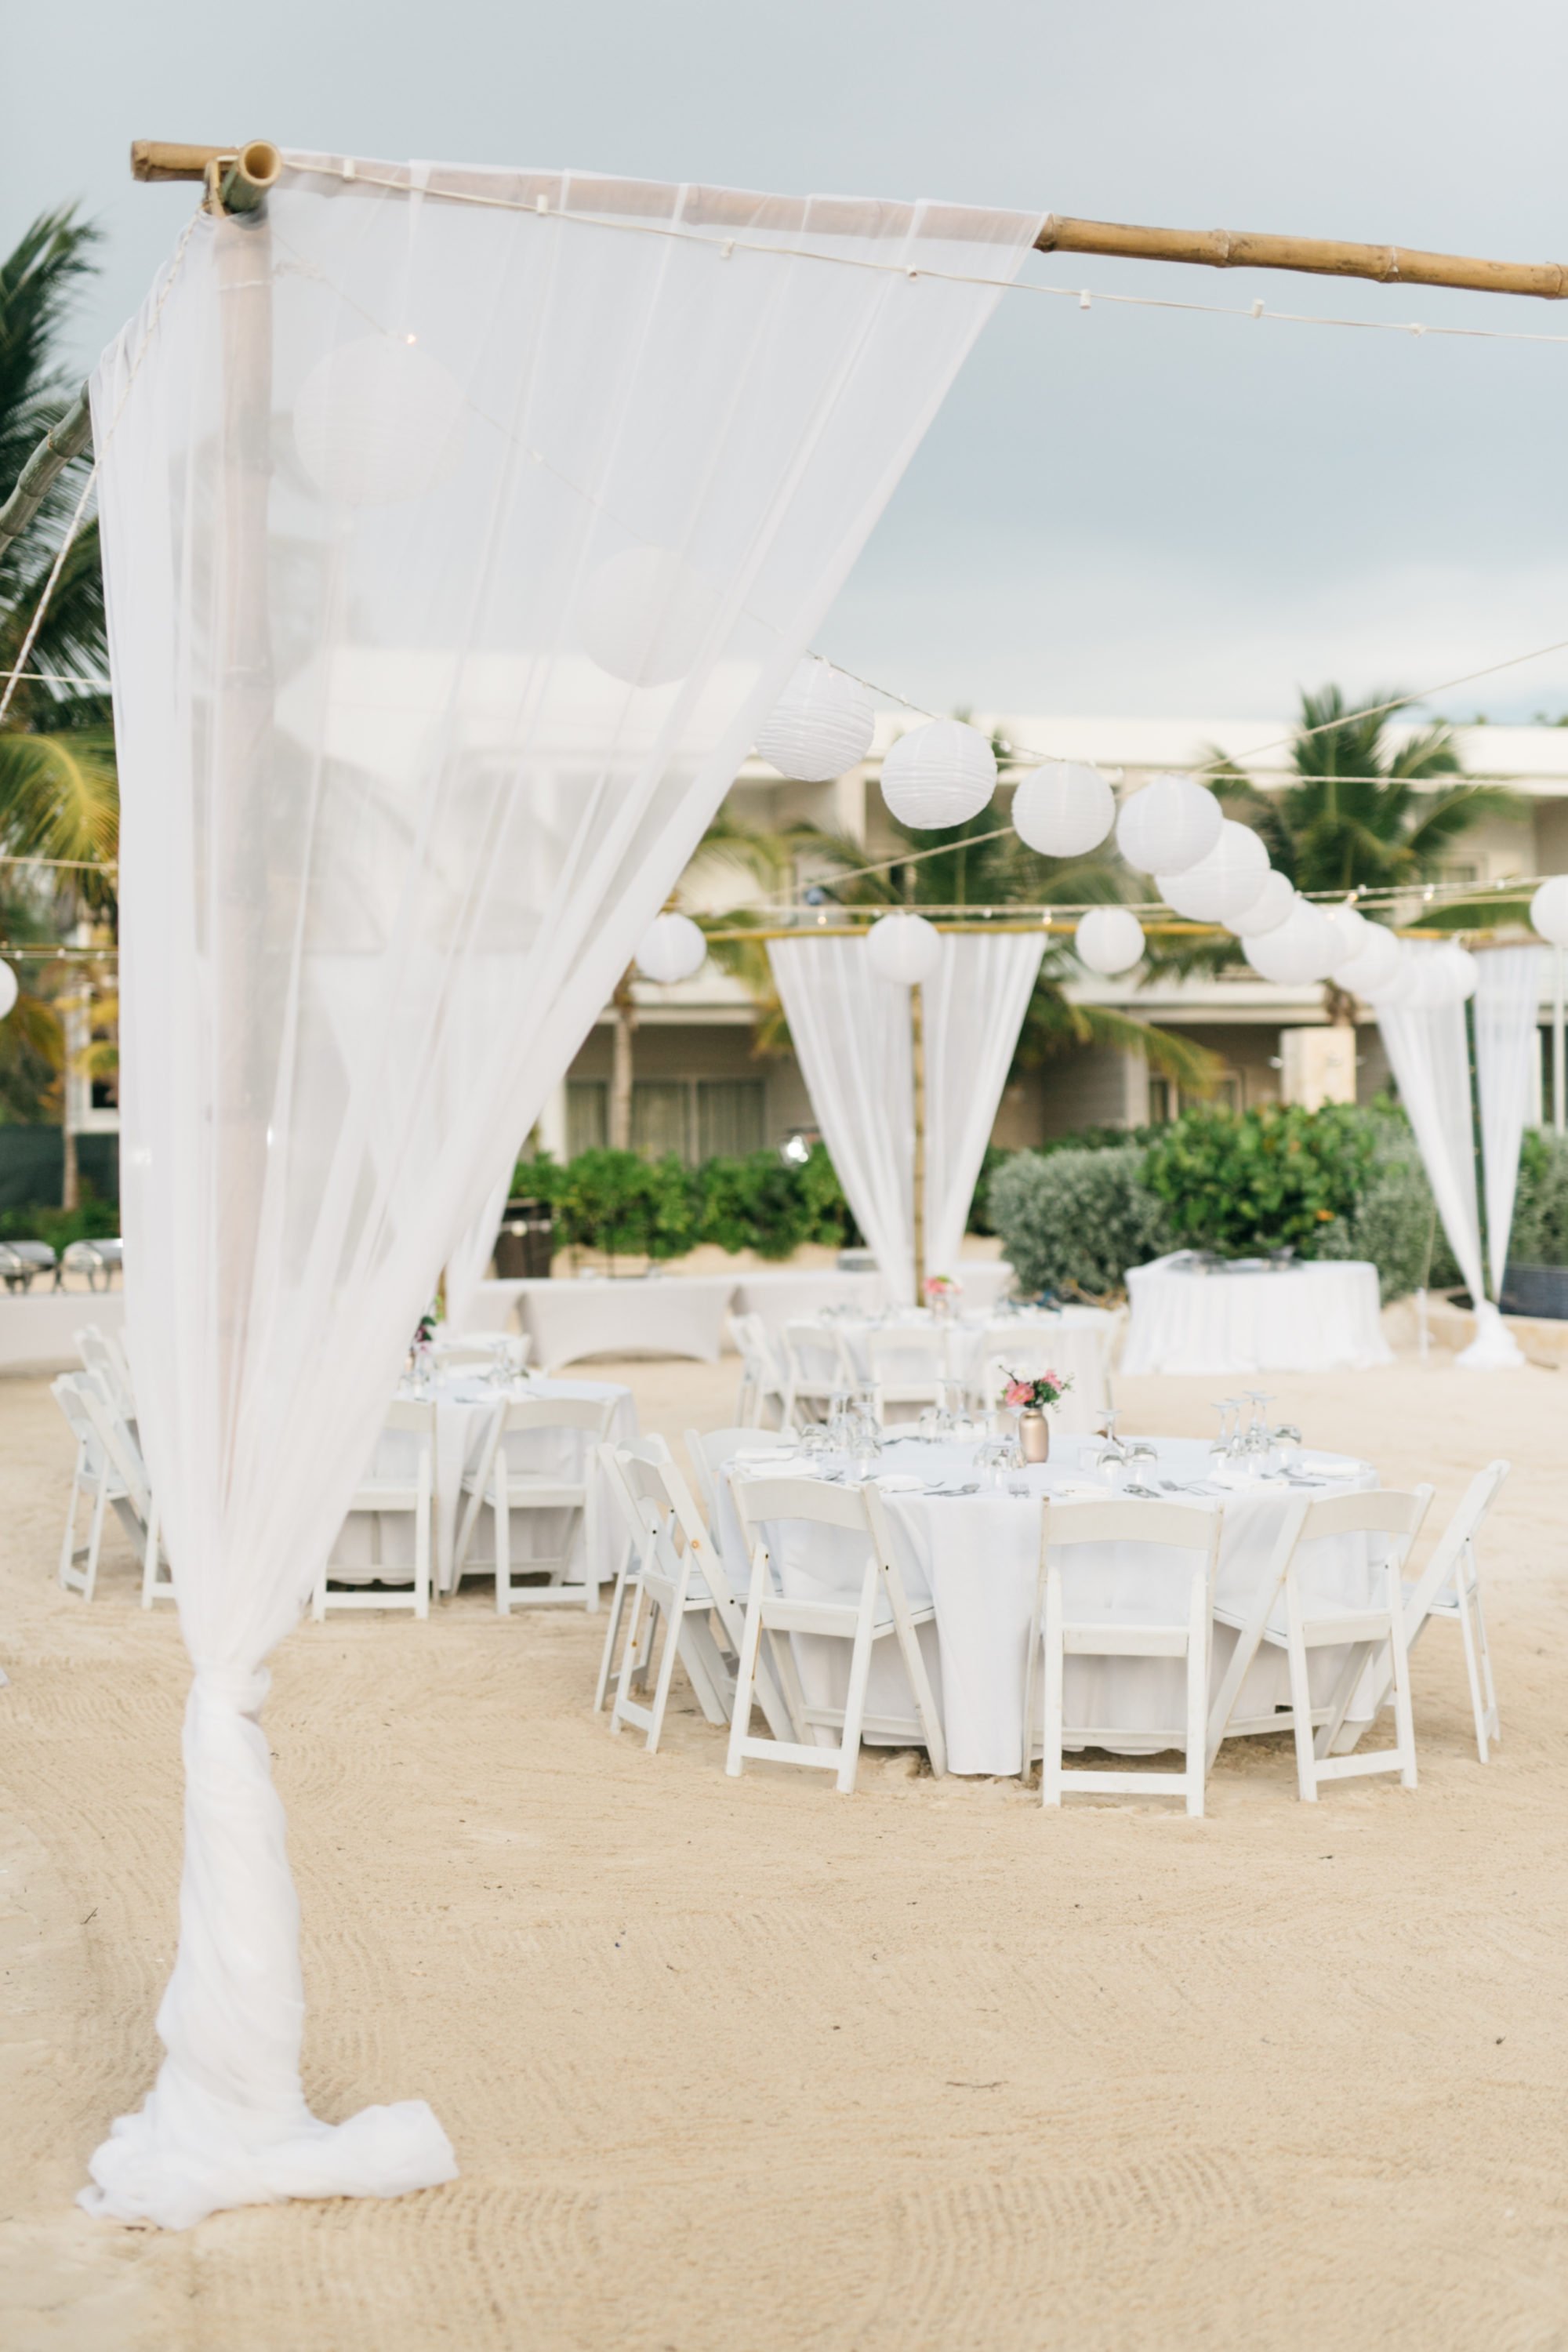 Royalton White Sands Resort beach reception